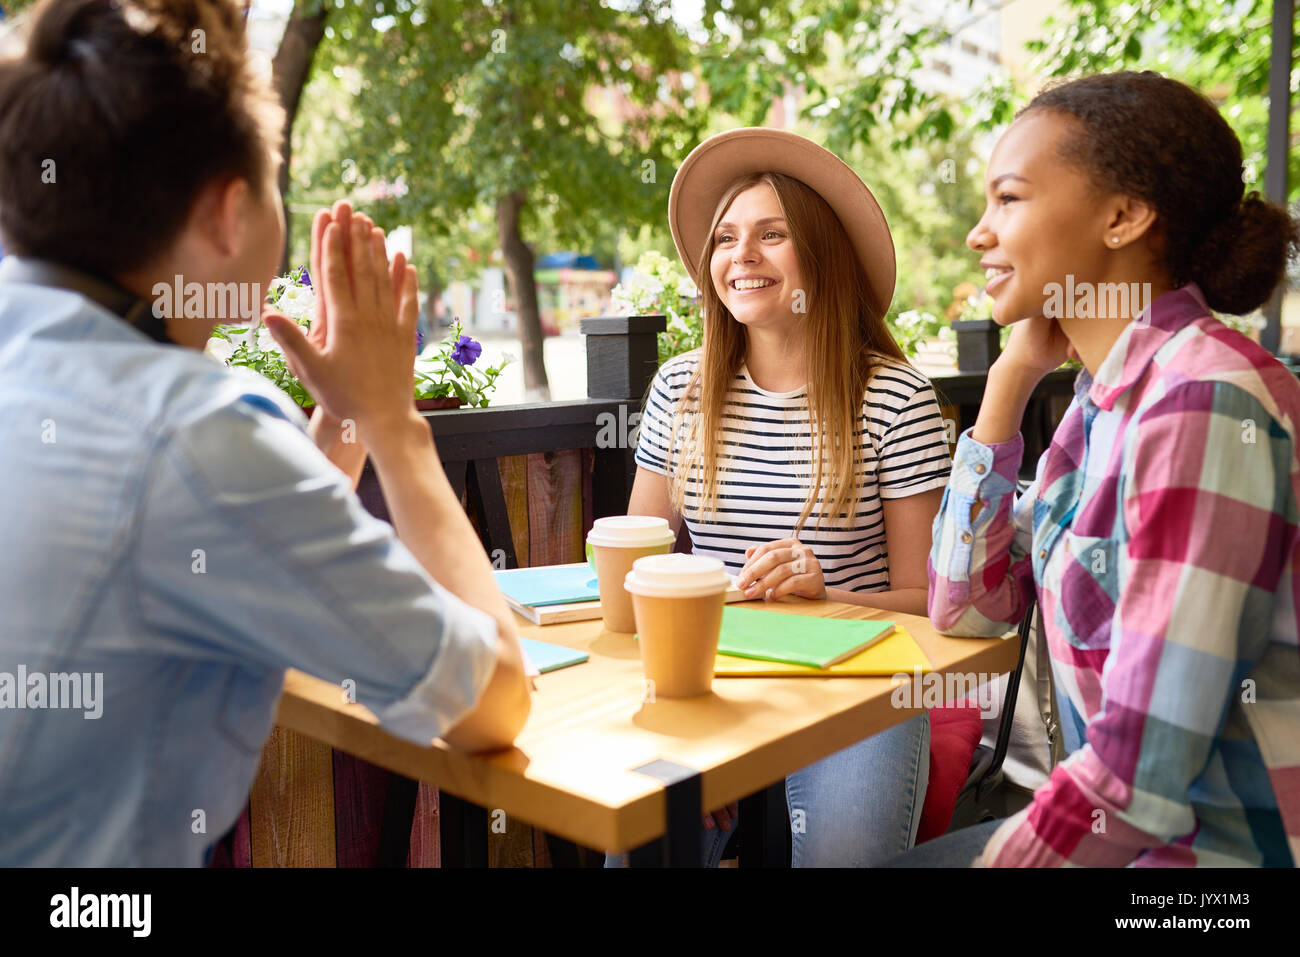 Group of Young People Studying in Cafe - Stock Image